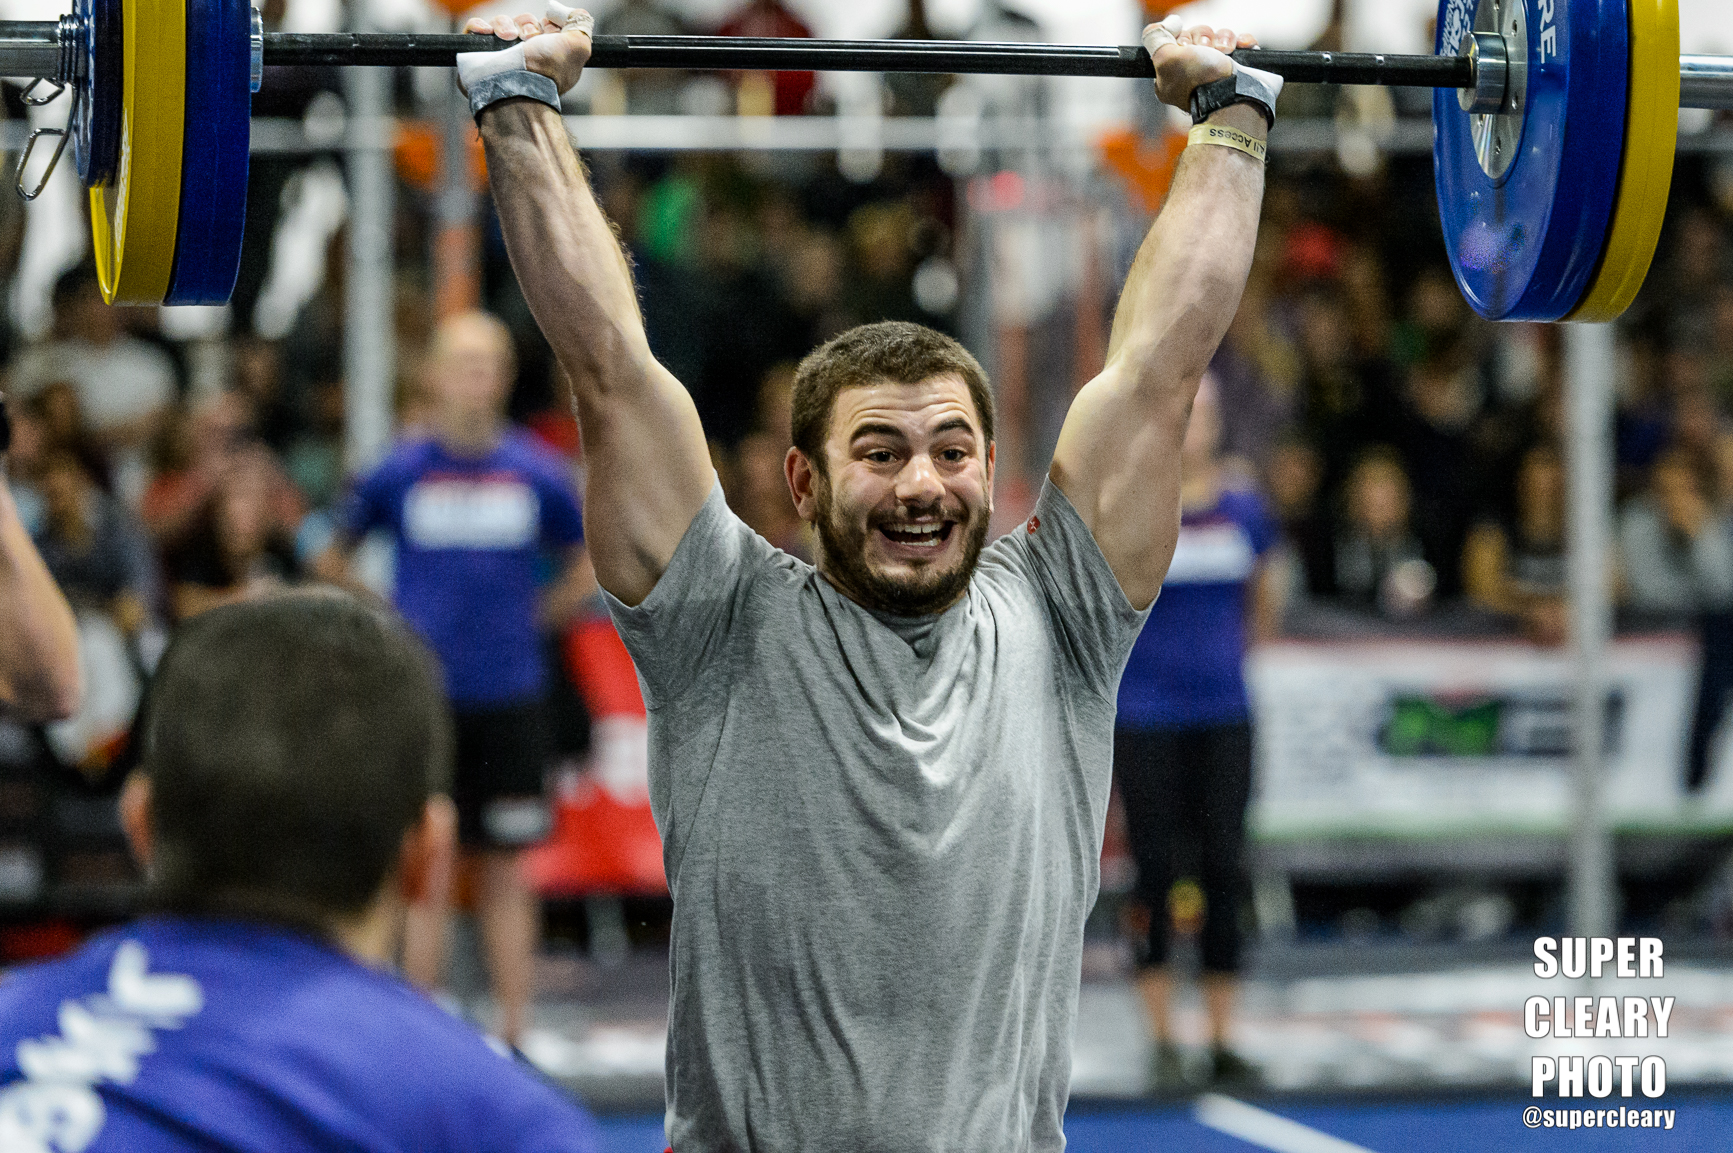 Mat Fraser - Shot for East Coast Championship